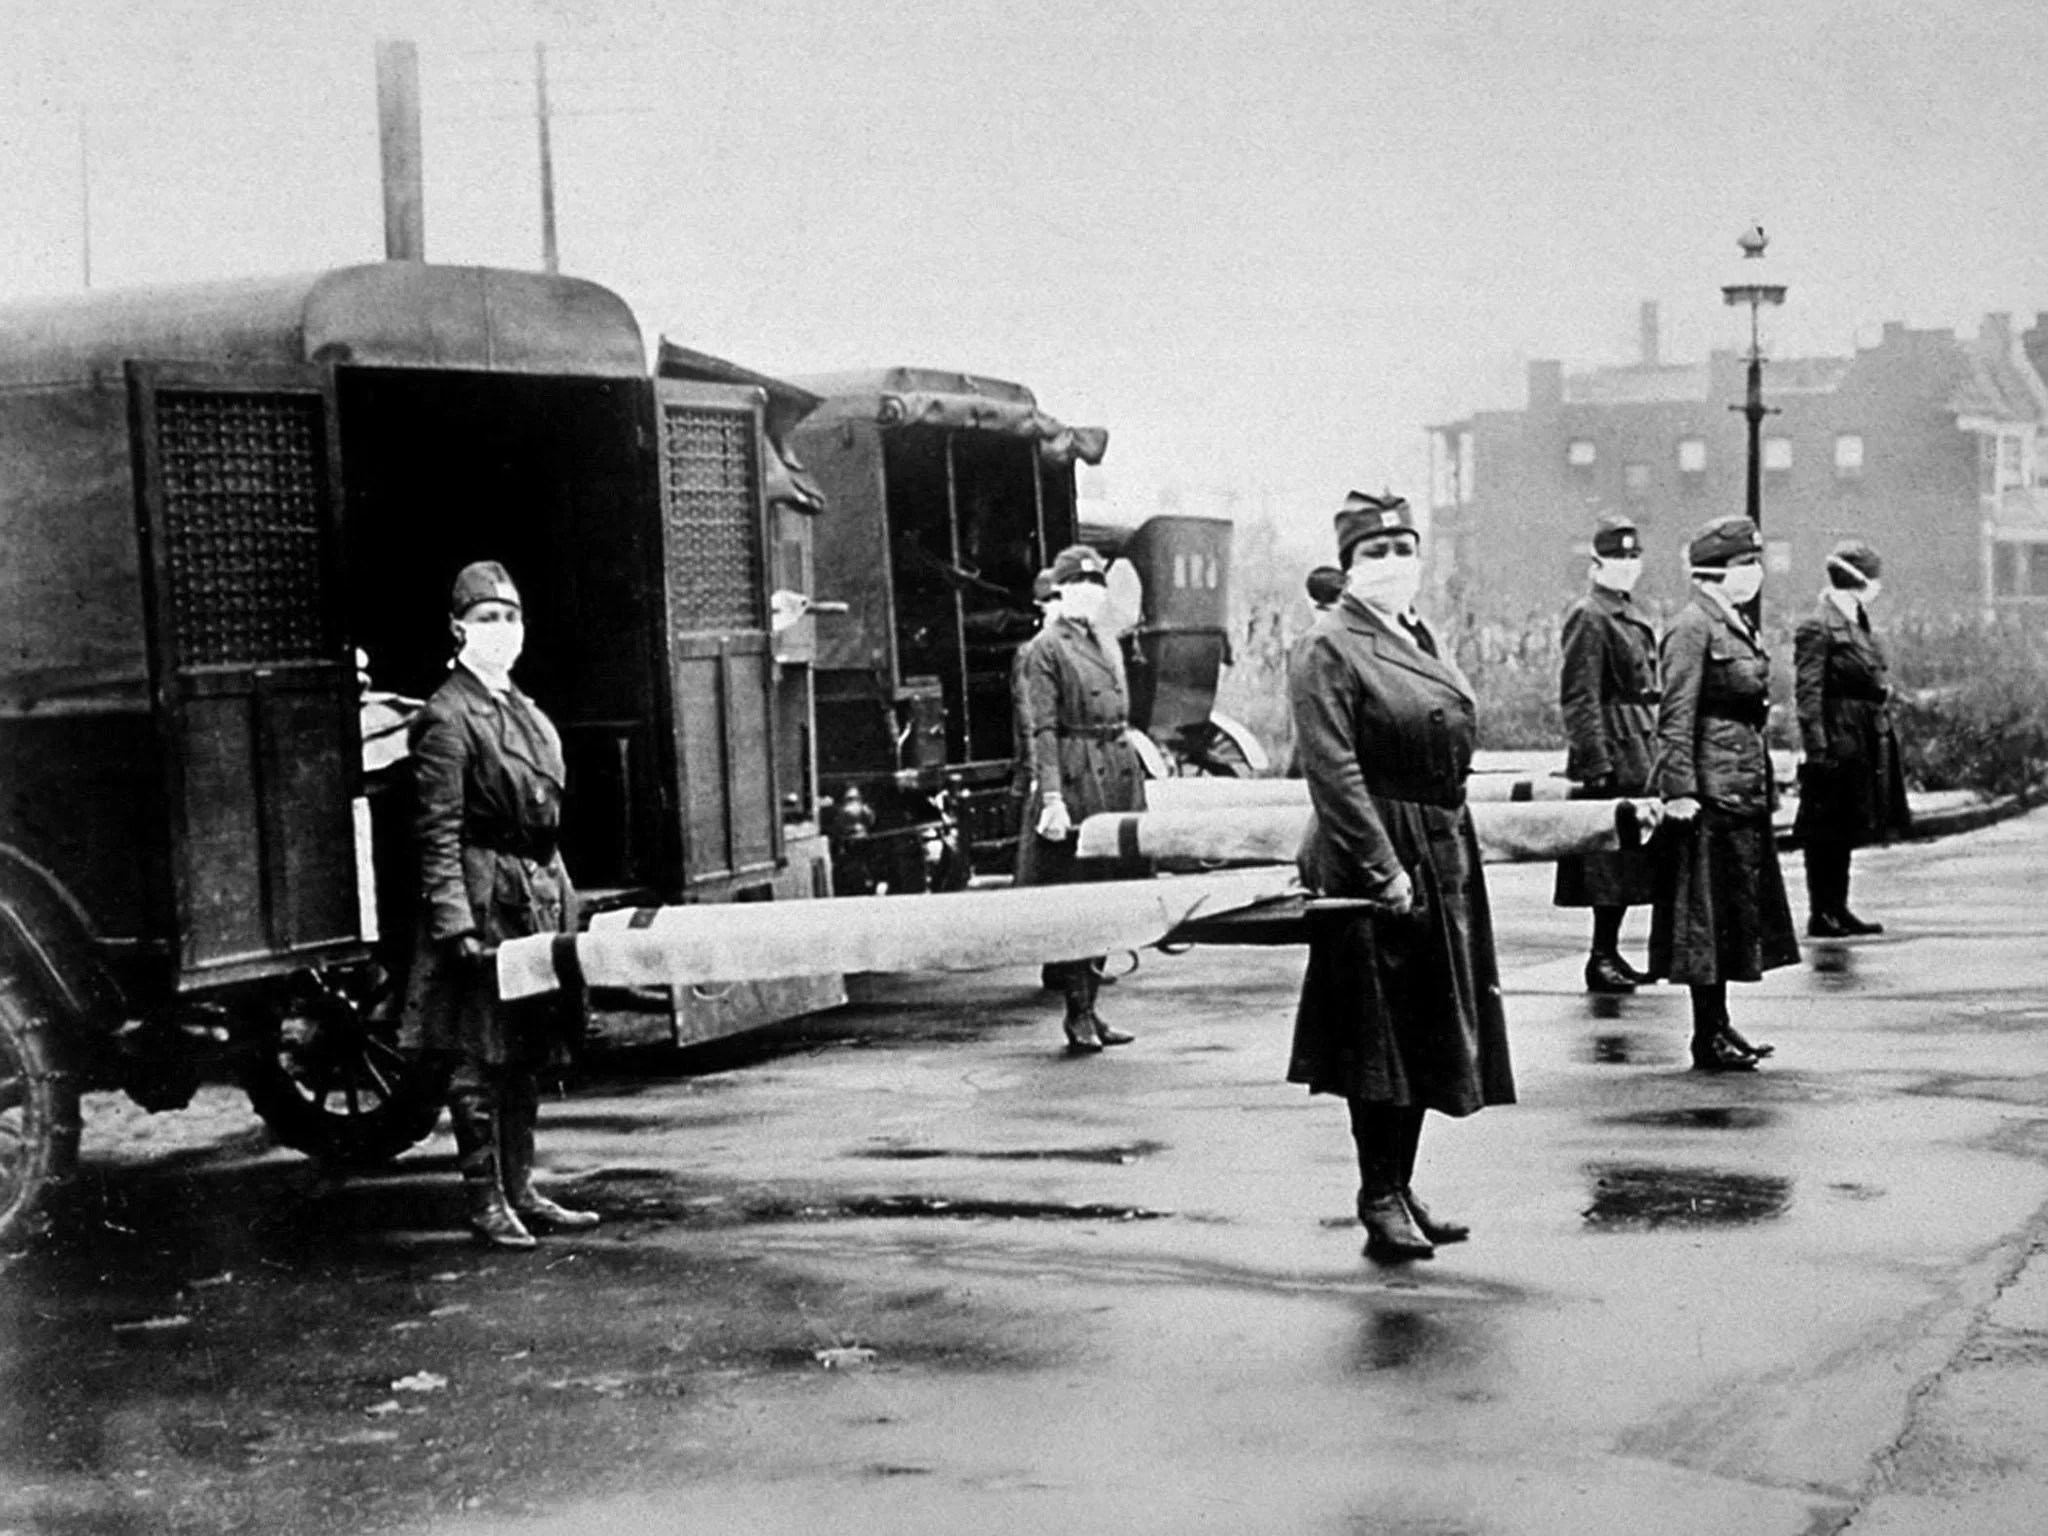 One Hundred Years On From The Spanish Flu We Are Facing Another Major Pandemic